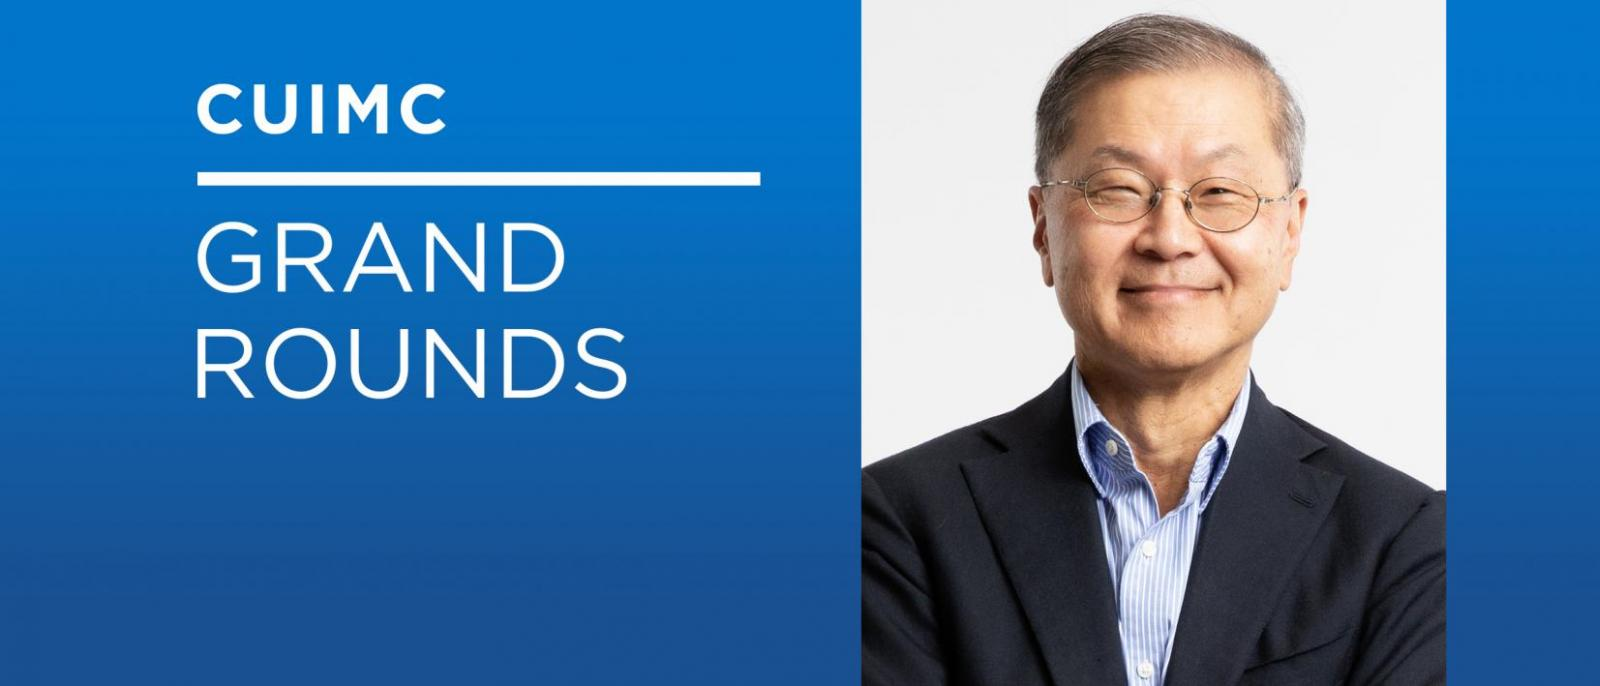 CUIMC Grand Rounds banner with Dr. David Ho's headshot